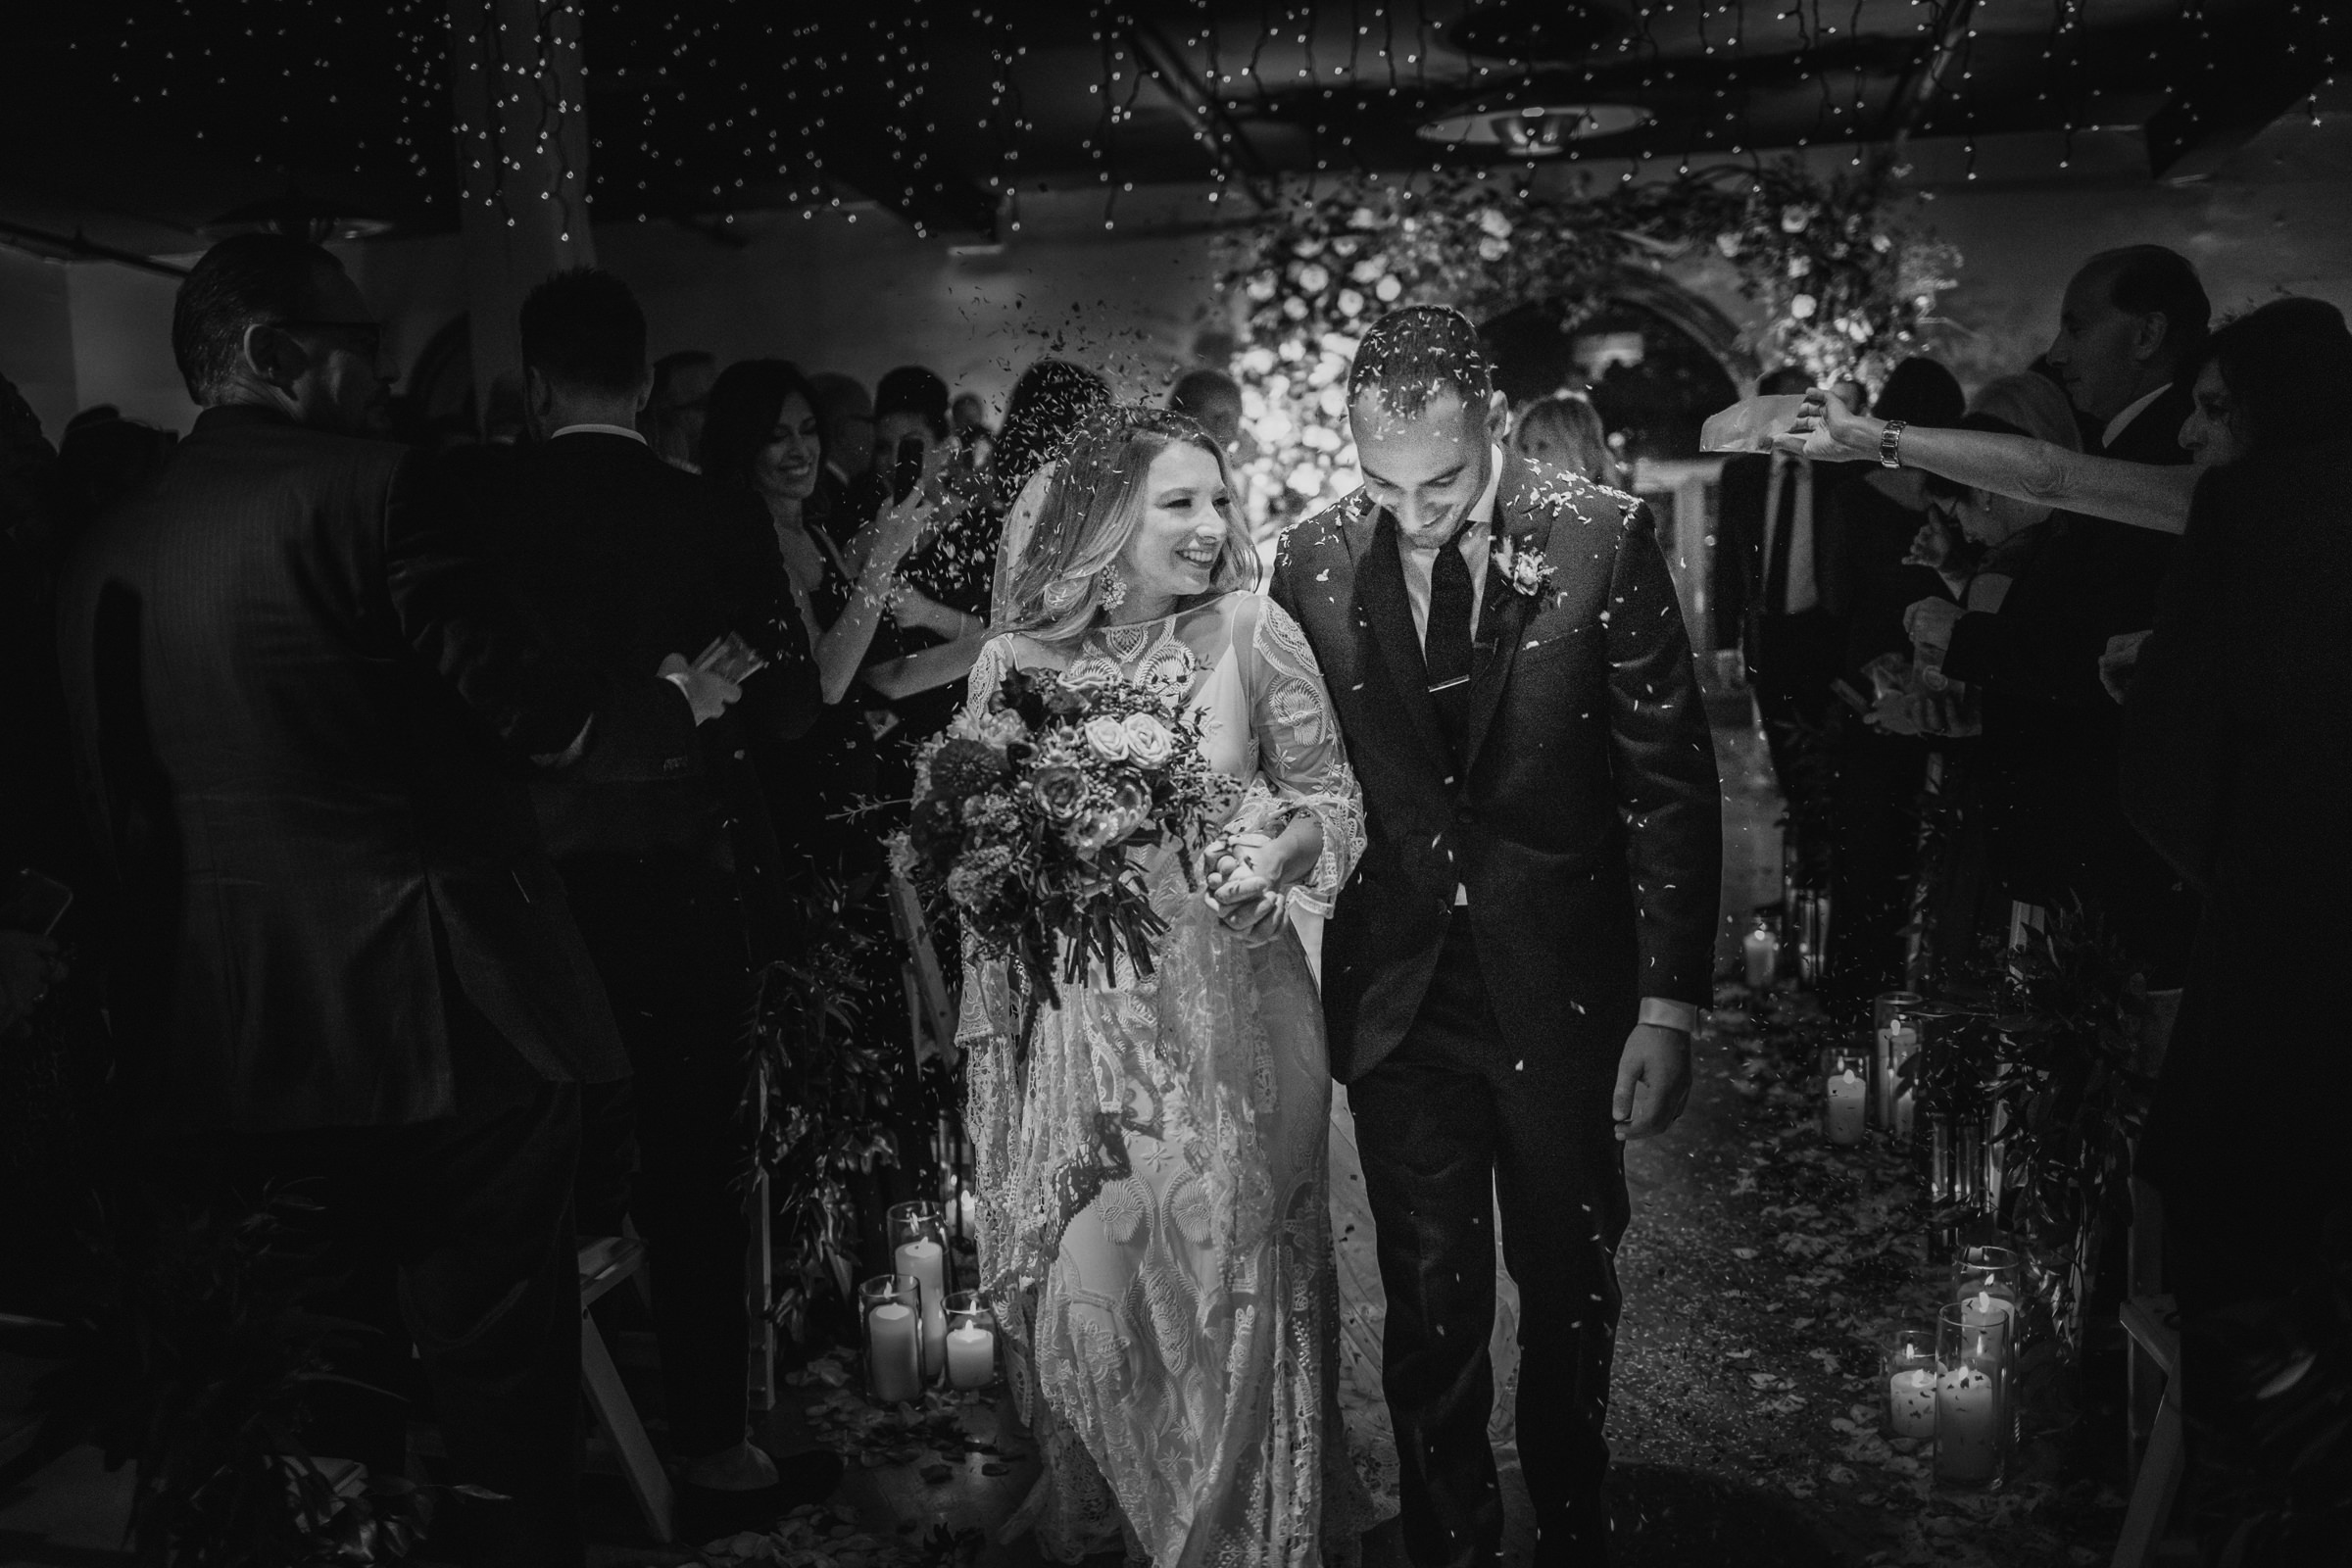 Bride and groom in confetti exit - Photo by Susan Stripling Photography